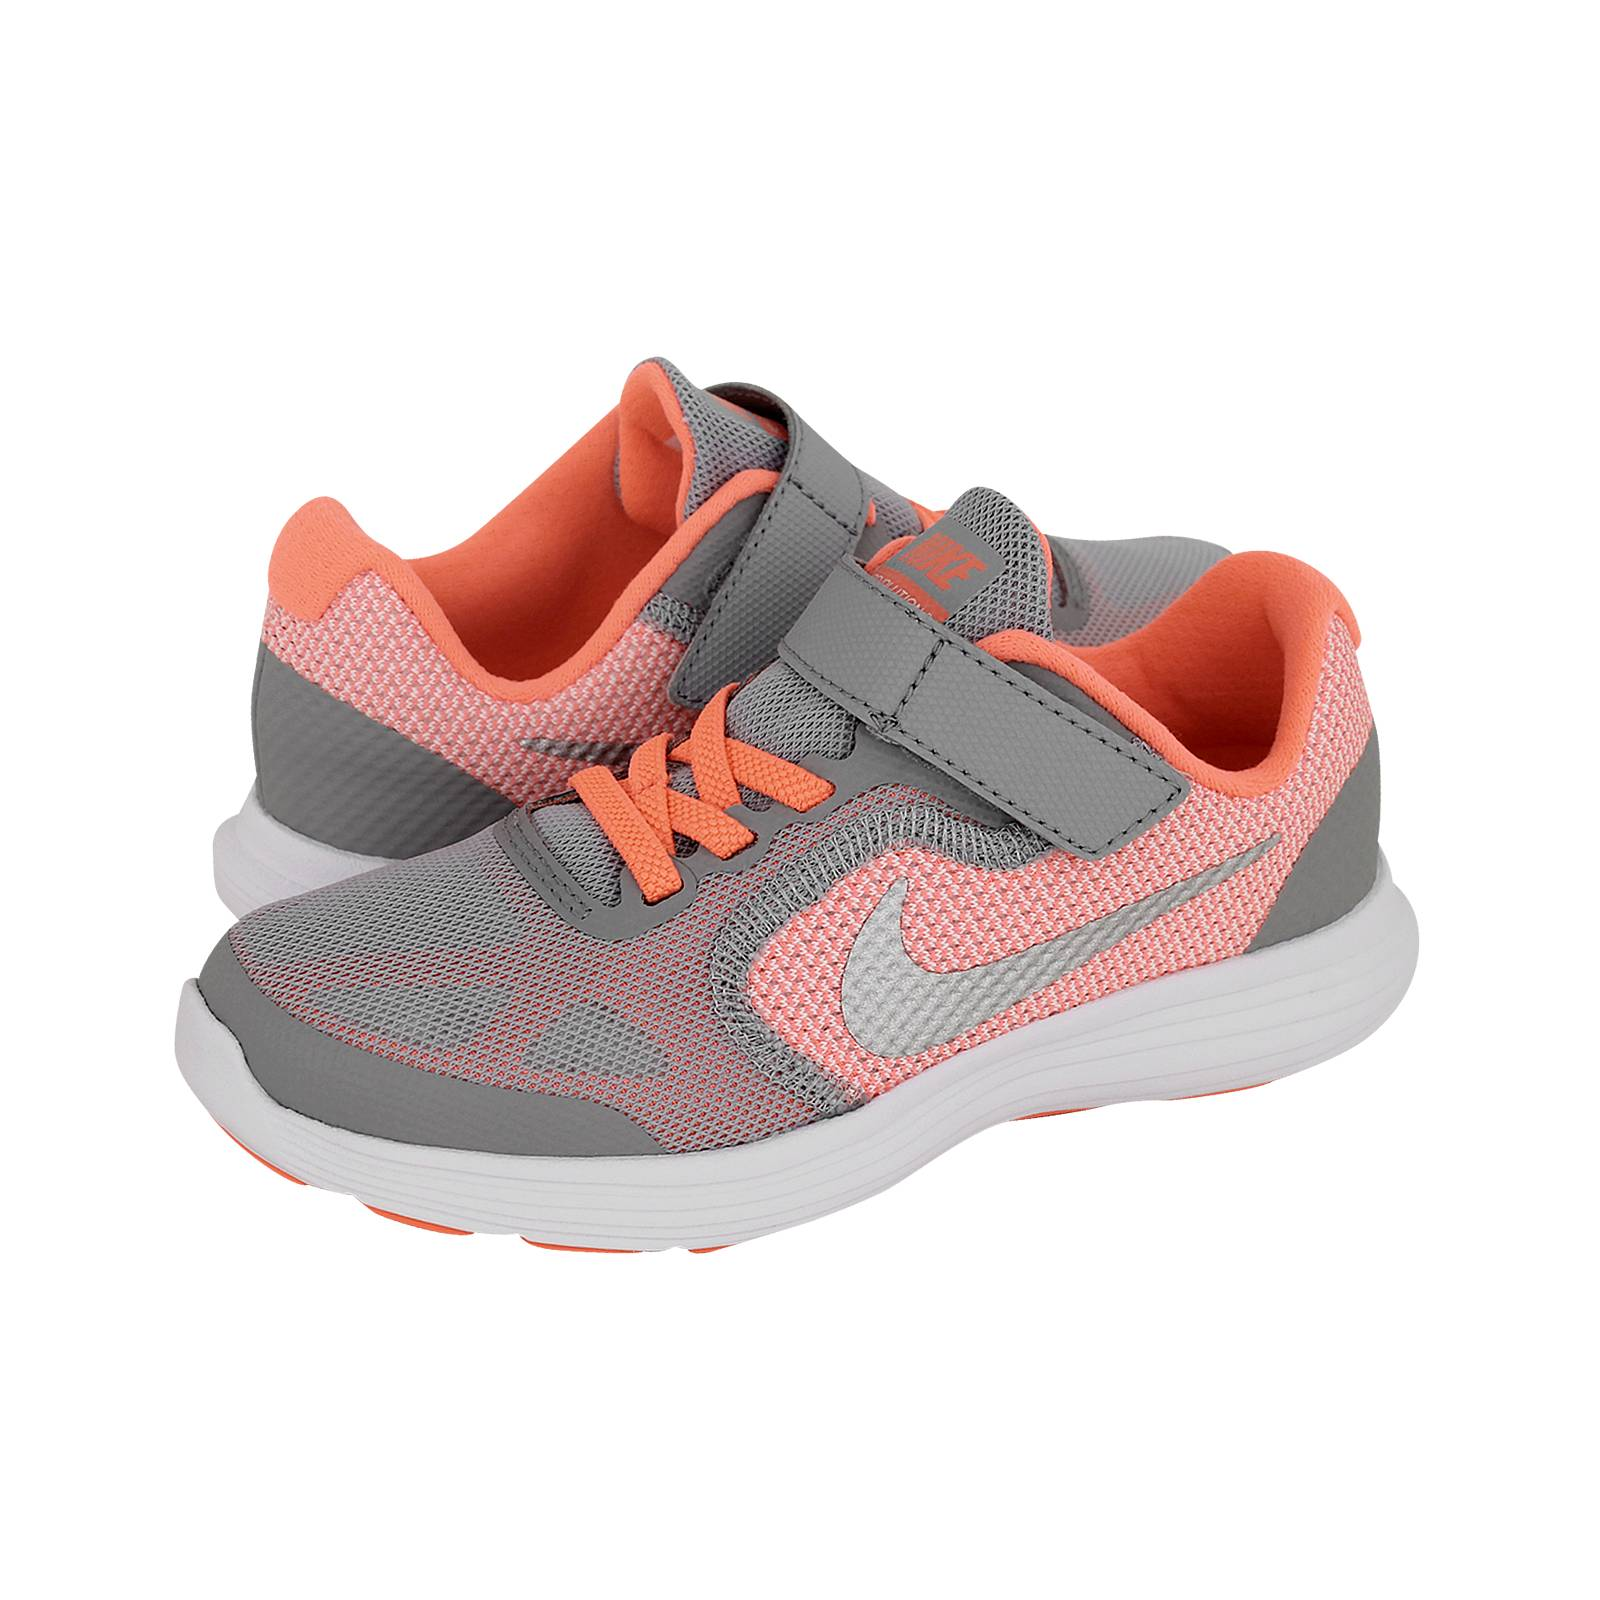 8be0bd6c7a4 Nike Revolution 3 PSV - Παιδικά αθλητικά παπούτσια Nike από υφασμα ...